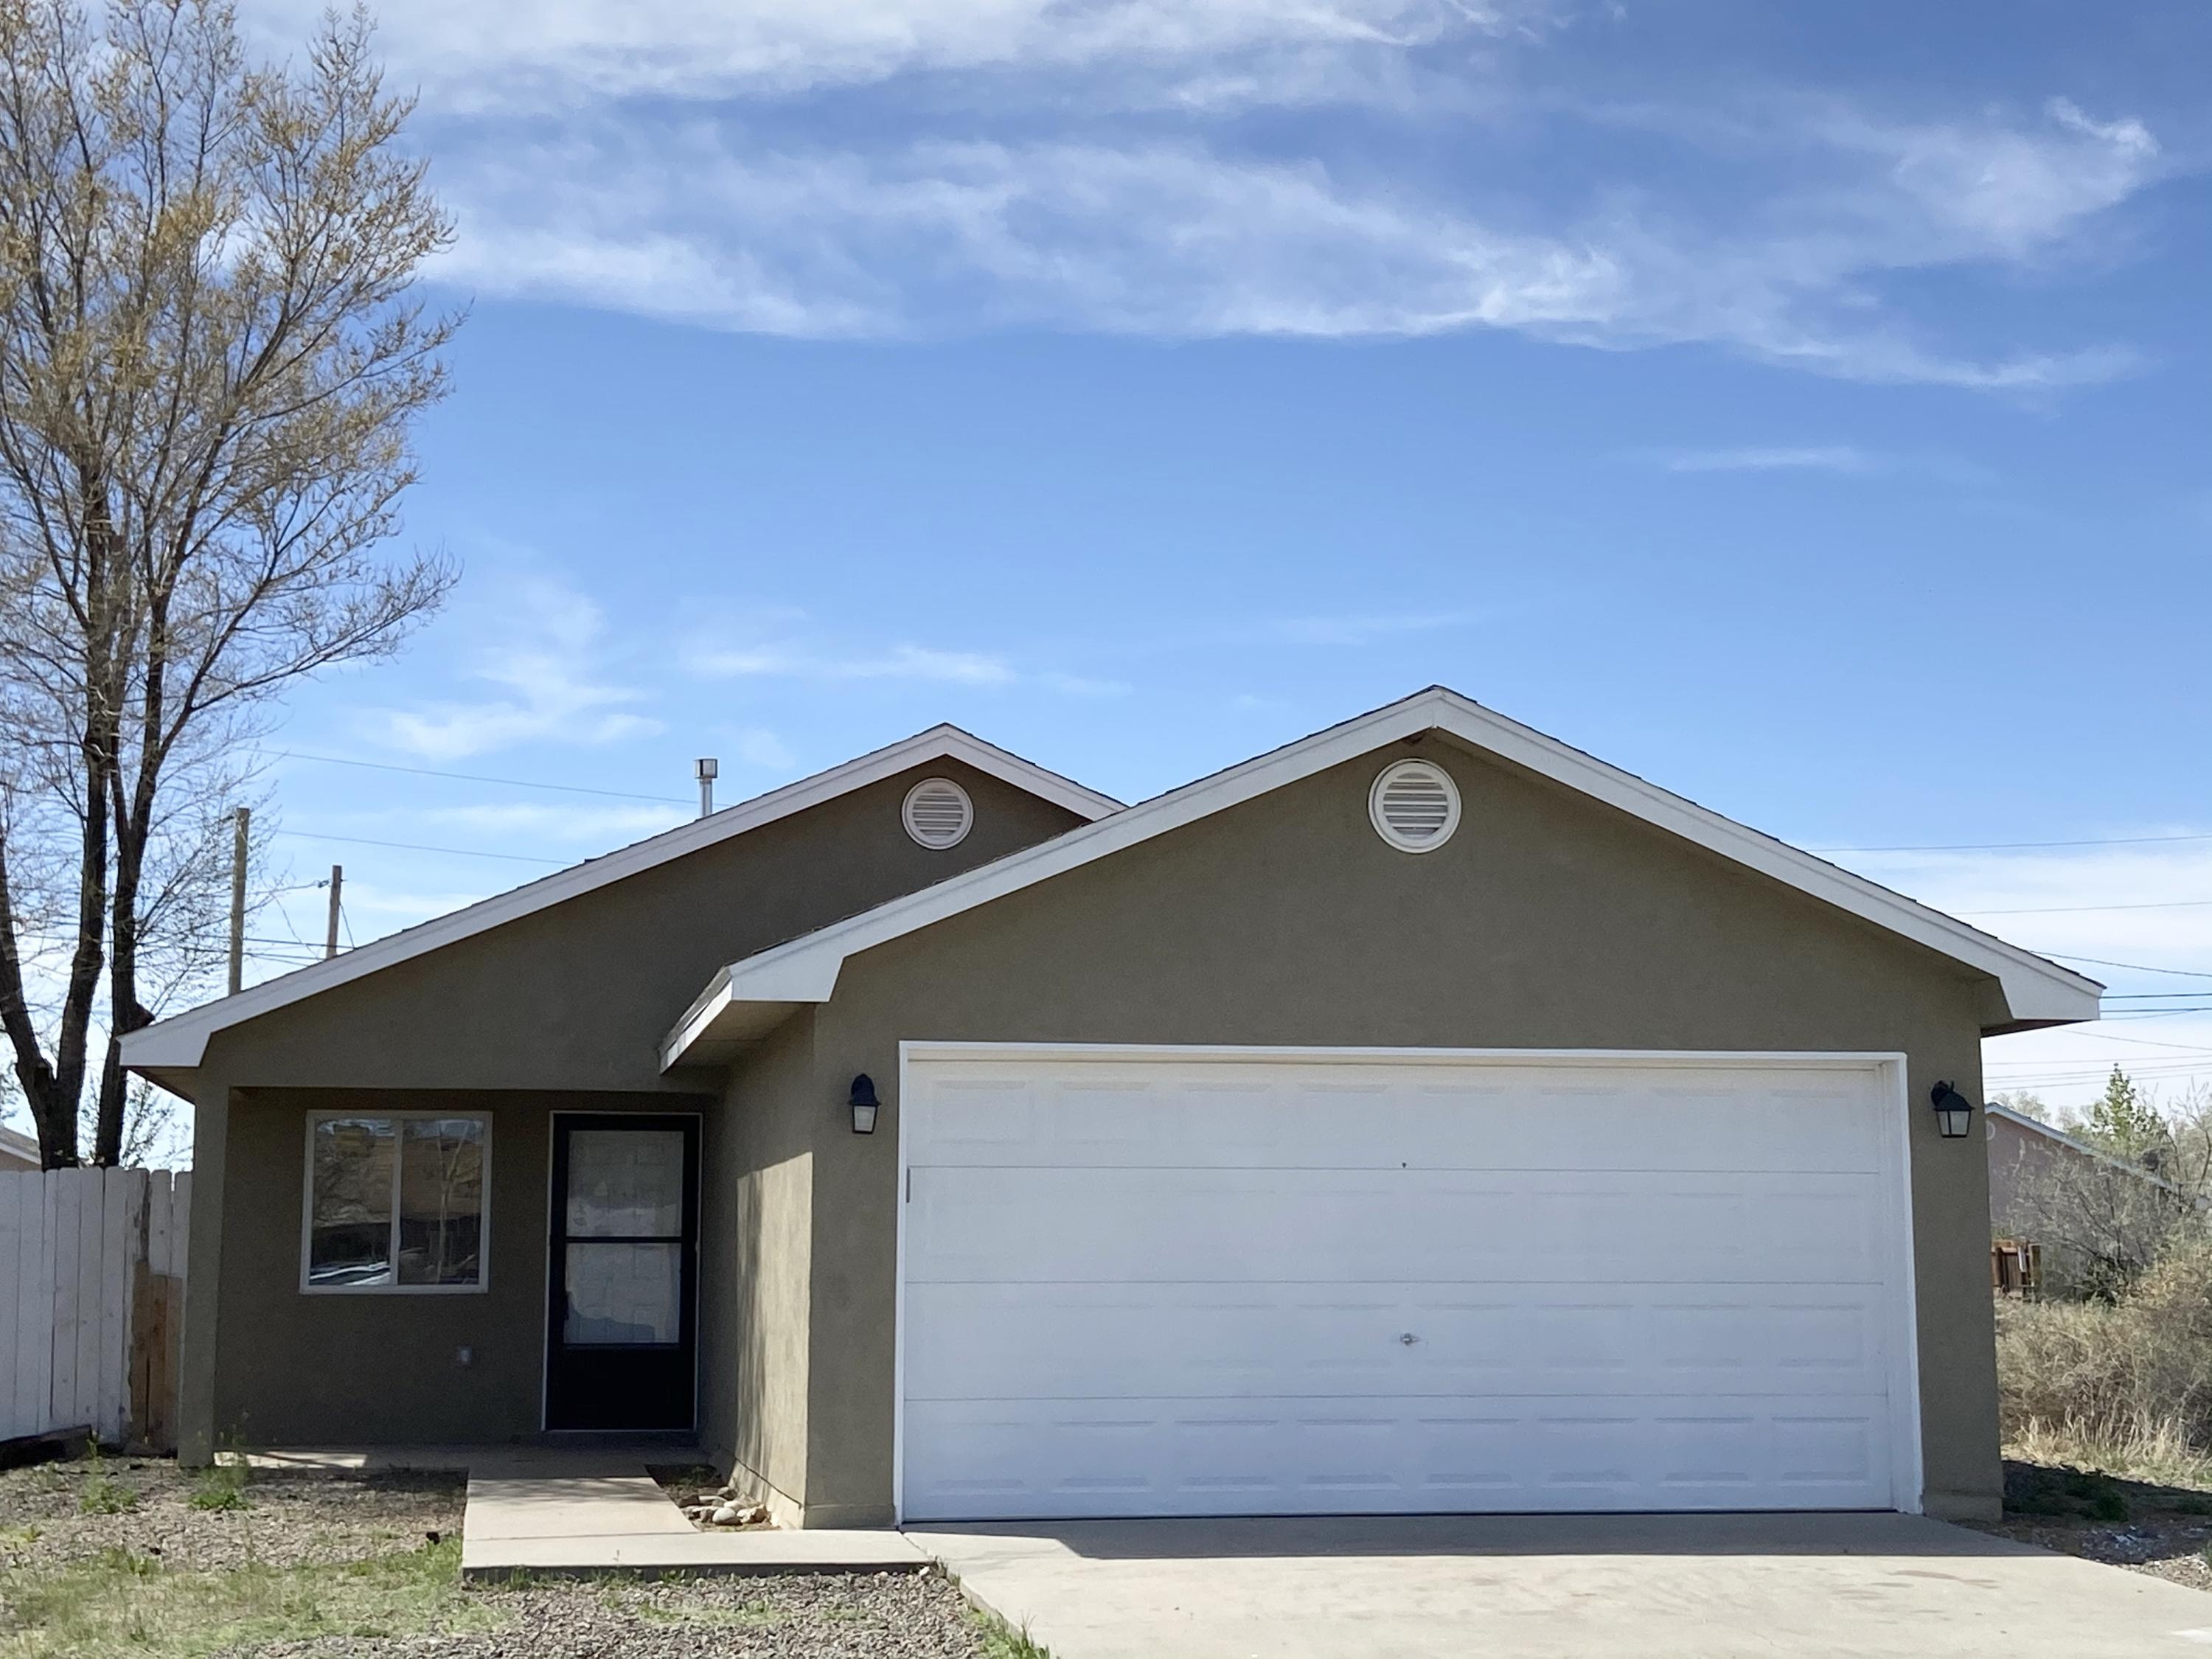 Cute 3 bedroom 2 bath, 2 Car Garage in Moriarty.  Newer carpet.  Freshly painted, open kitchen with tons of cabinets and countertop space. On paved road.  Easy access to I-40.